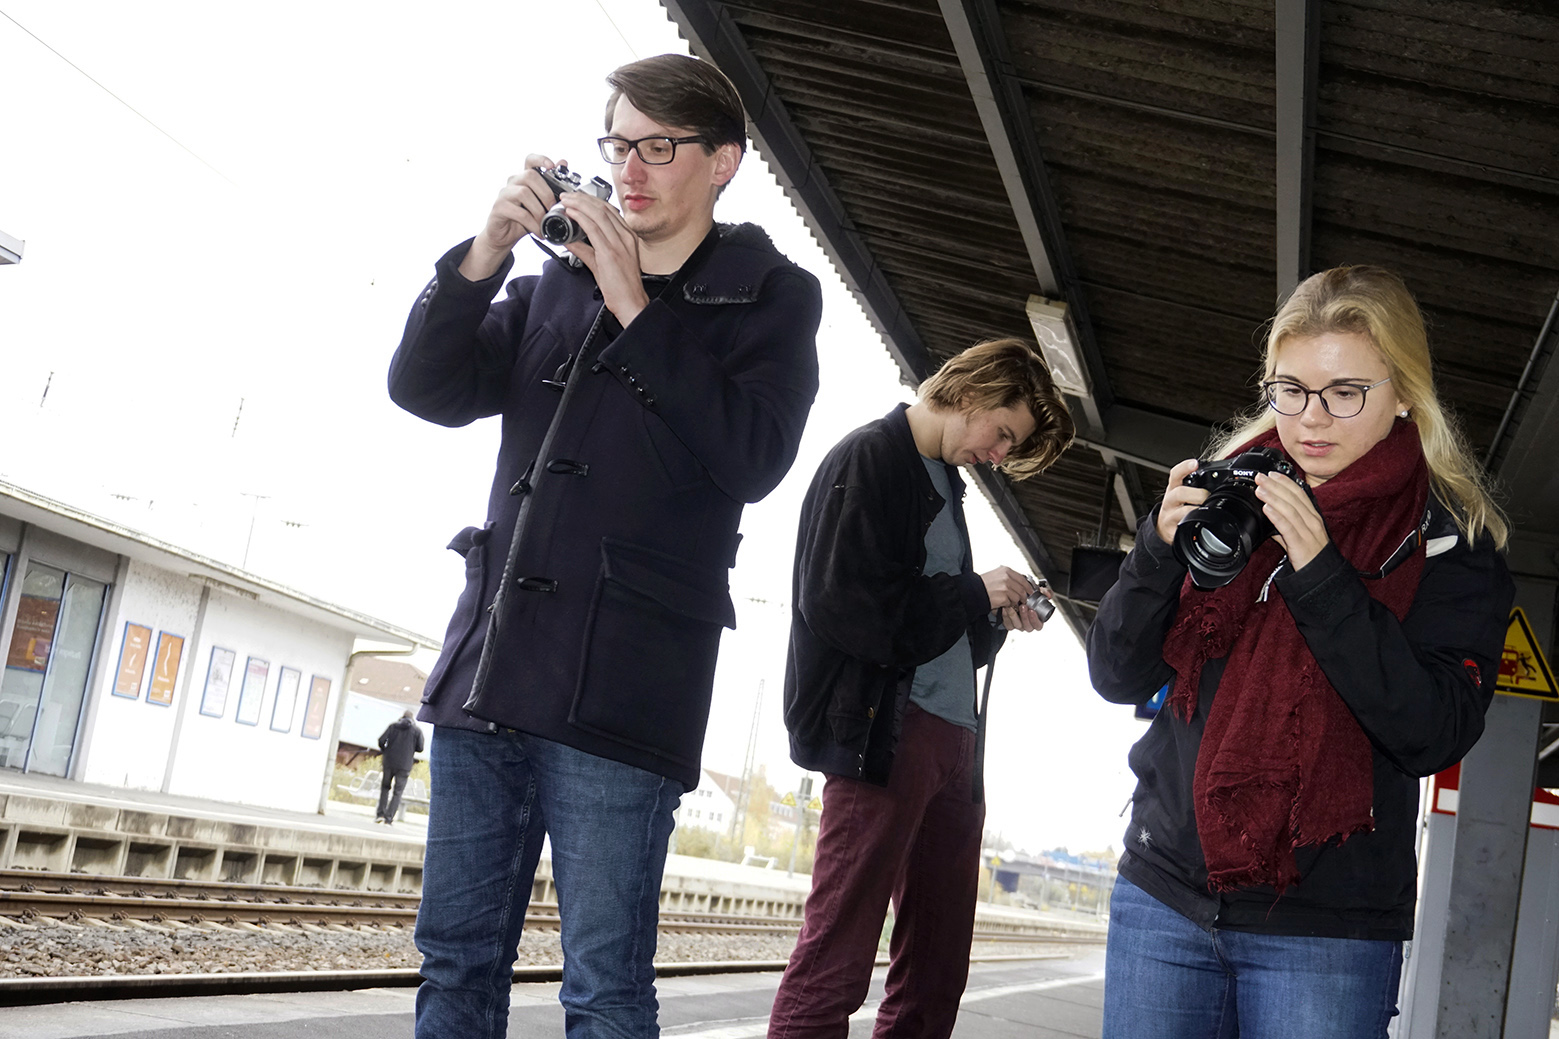 Studenten der Zeitenspiegel Journalistenschule in Reutlingen, 2018.